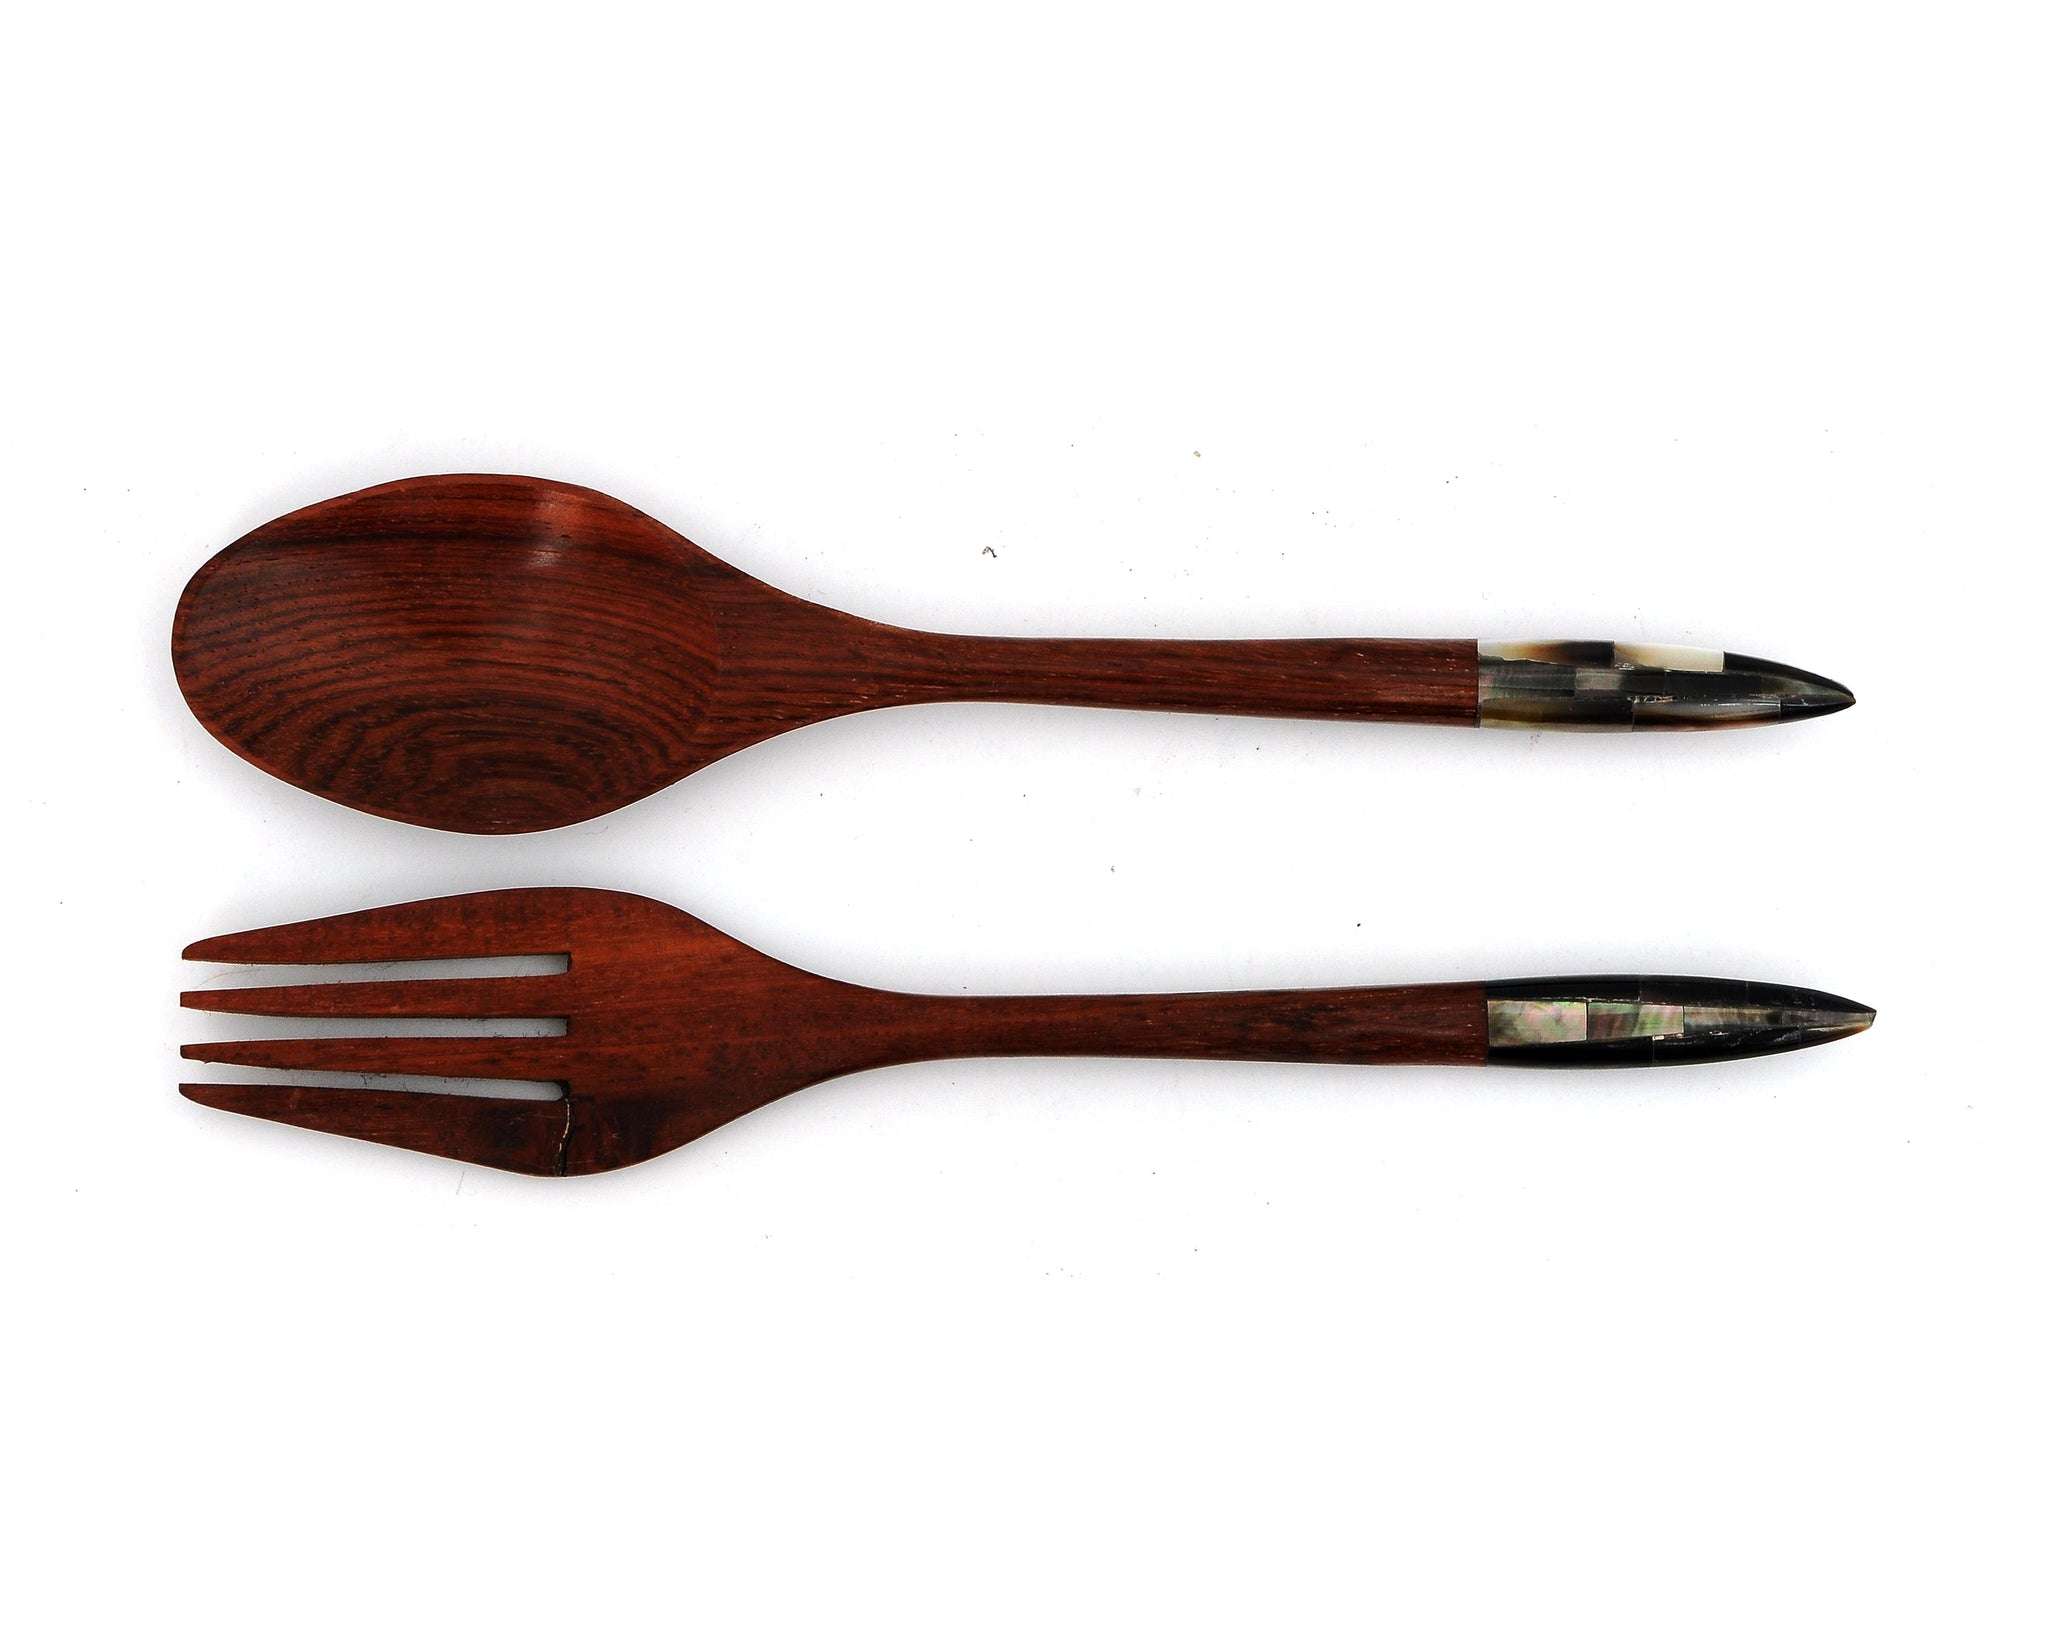 Myanmar Wooden Dinner Spoons and Forks With Mother of Pearl Inlay Handle